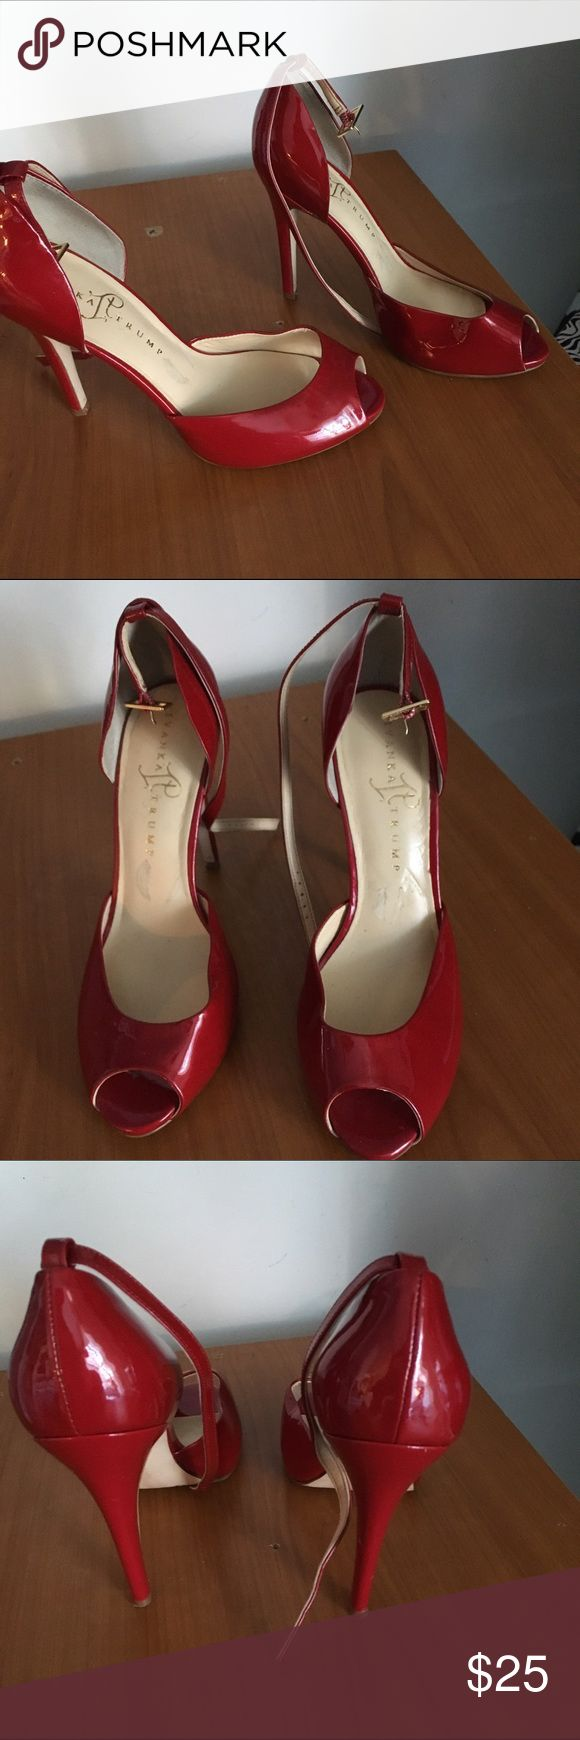 ⚡Sale⚡Ivanka Trump Red Patent Leather Heels 🔴1 Hr Flash sale 🔴 Price reduced and is fudm🔴 In very good condition. Does have some minor nics on the heel part. Buckles around ankle. Heel height is approx 5 inches. Ivanka Trump Shoes Heels